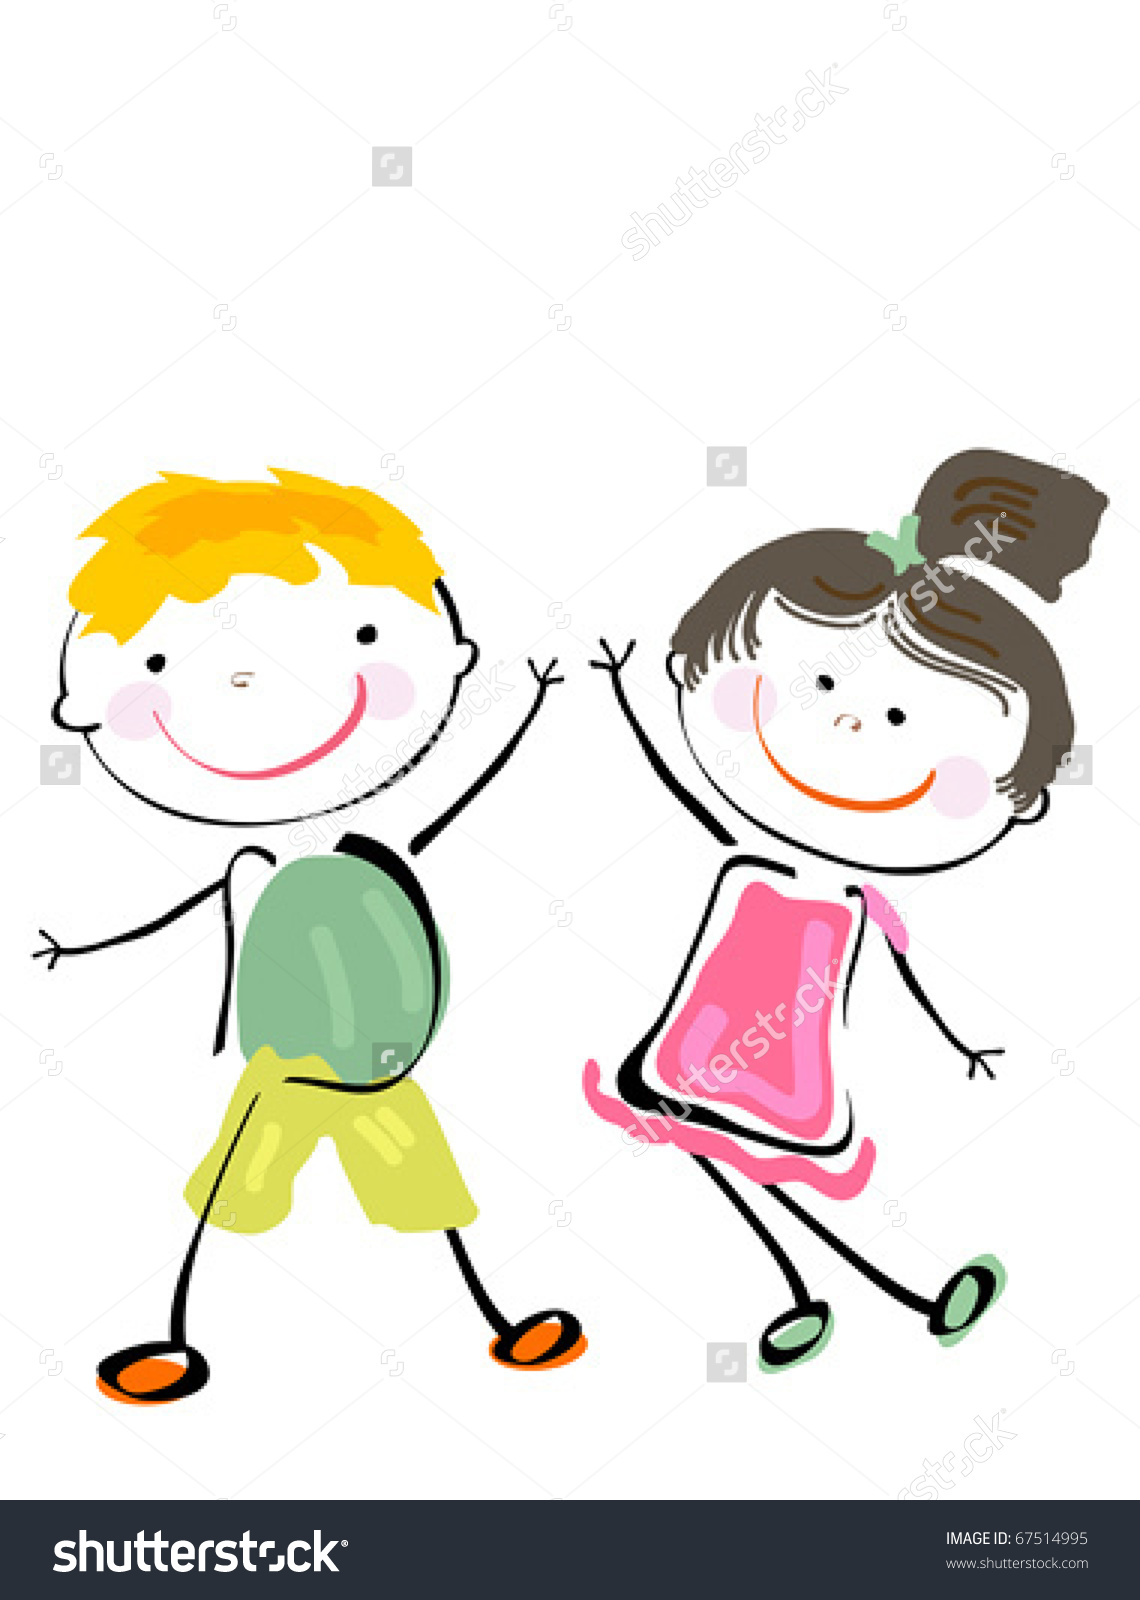 girl and guy bestfriends clipart - Clipground